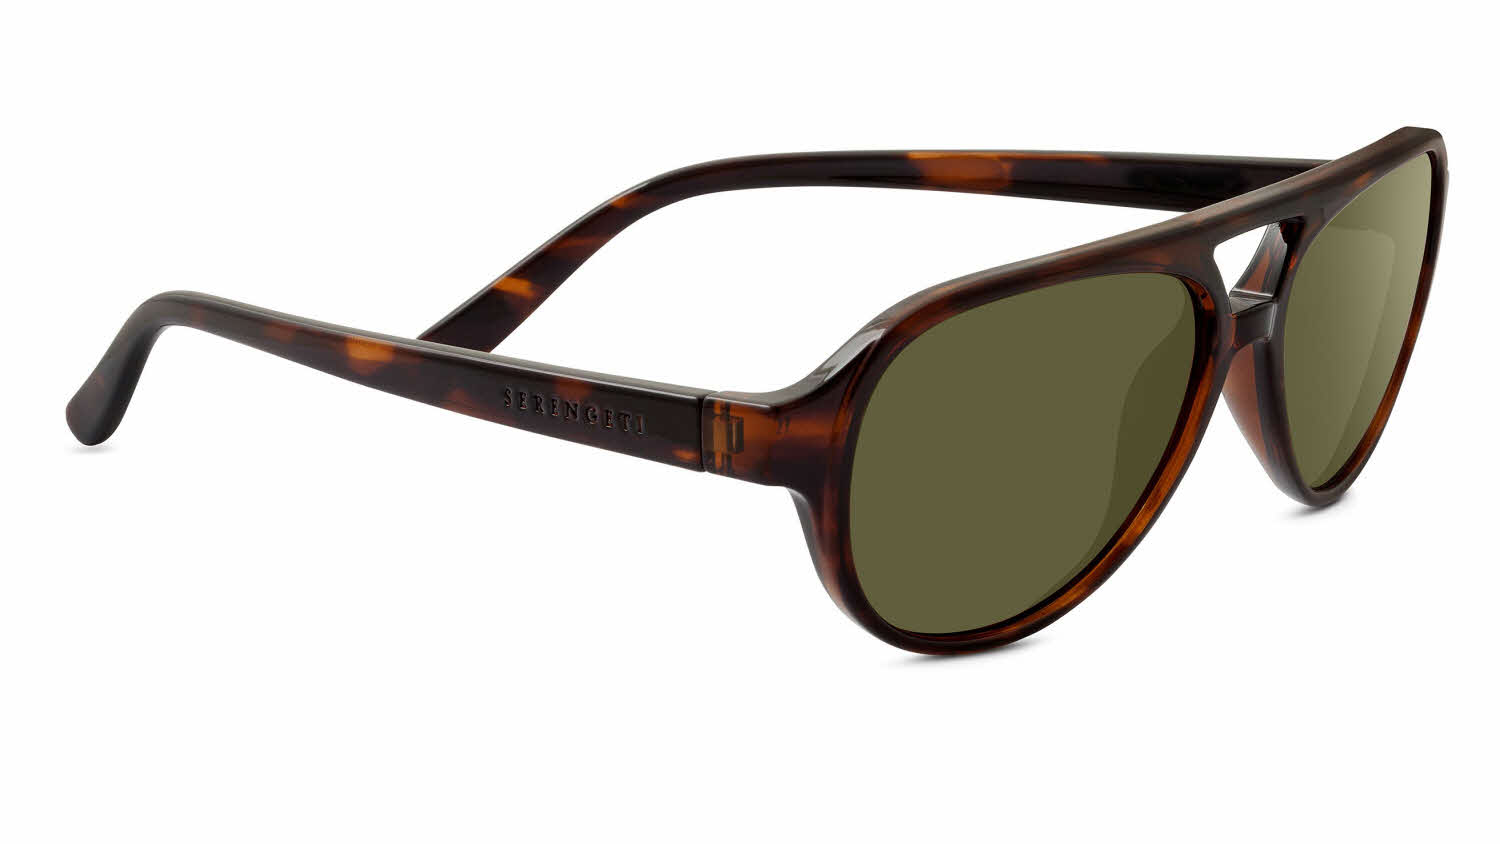 Serengeti Giorgio Prescription Sunglasses